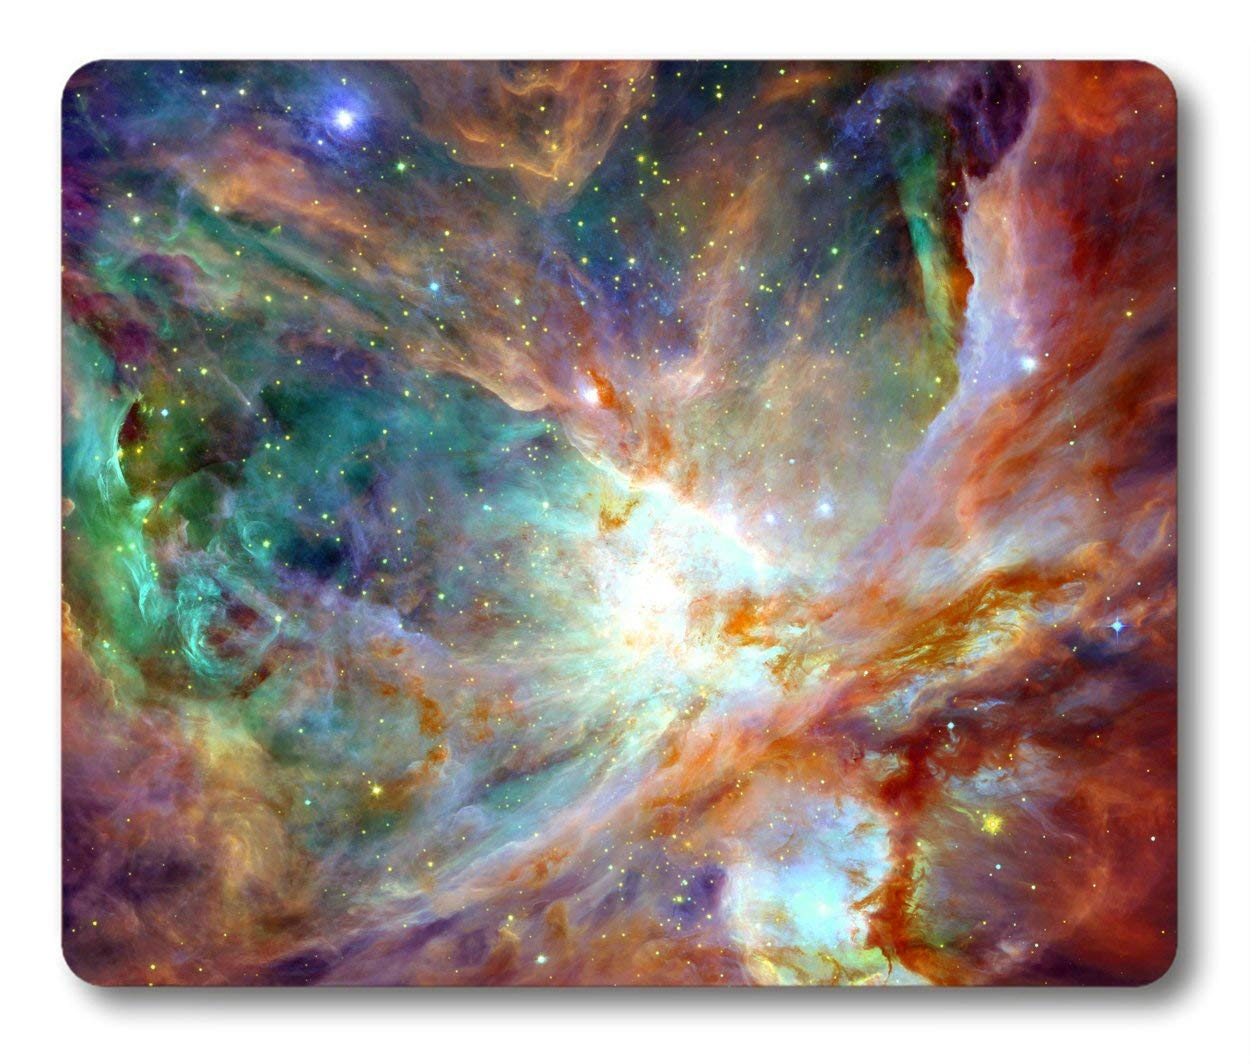 Nebula Mouse Pad by Smooffly,Colorful Night Sky With Clouds Stars Nebula Rectangle Non-Slip Rubber Mousepad Gaming Mouse Pad